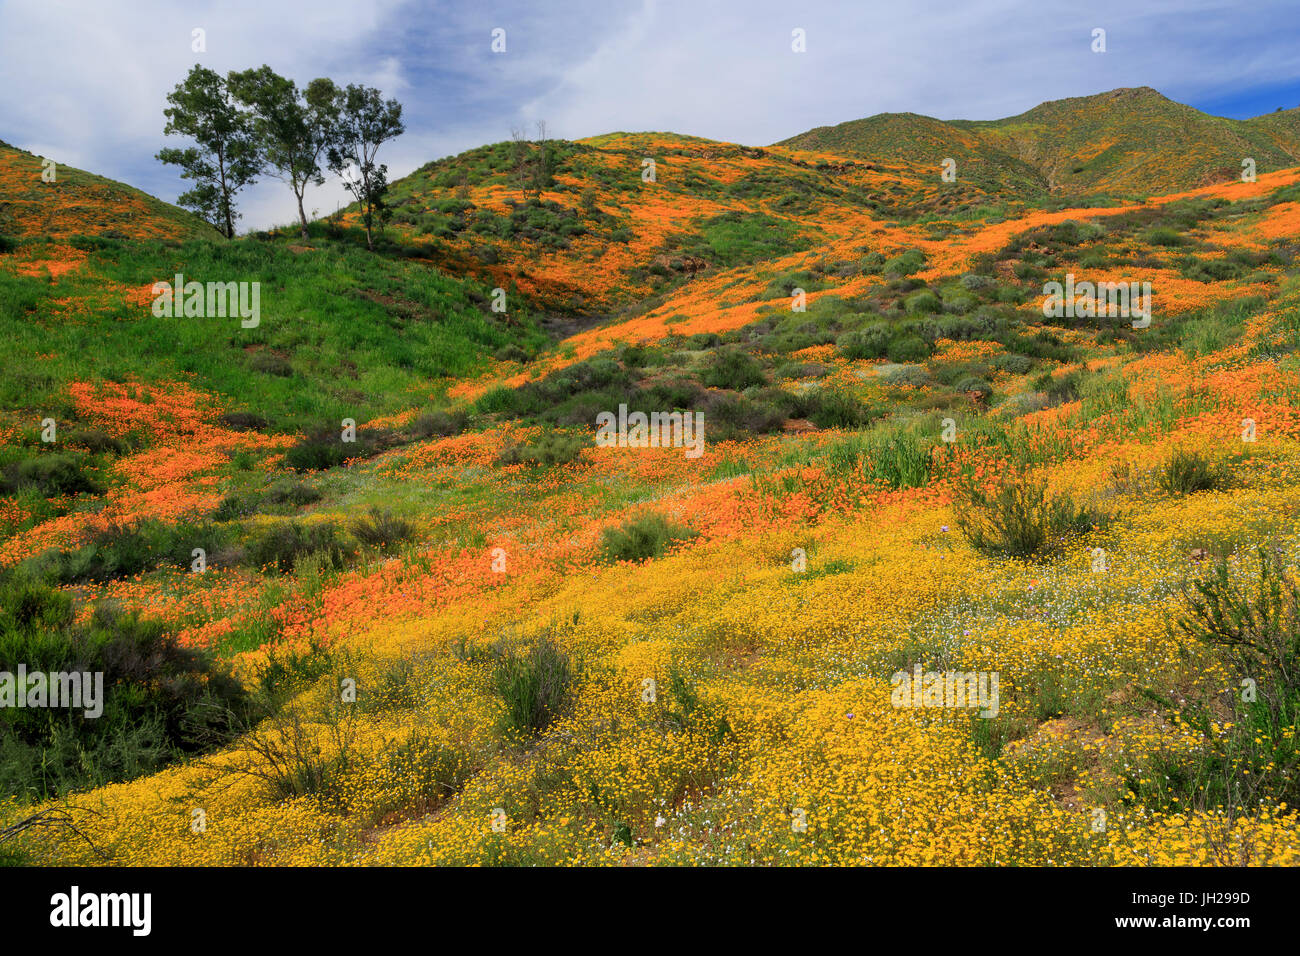 Walker Canyon, Lake Elsinore, Riverside County, California, United States of America, North America - Stock Image